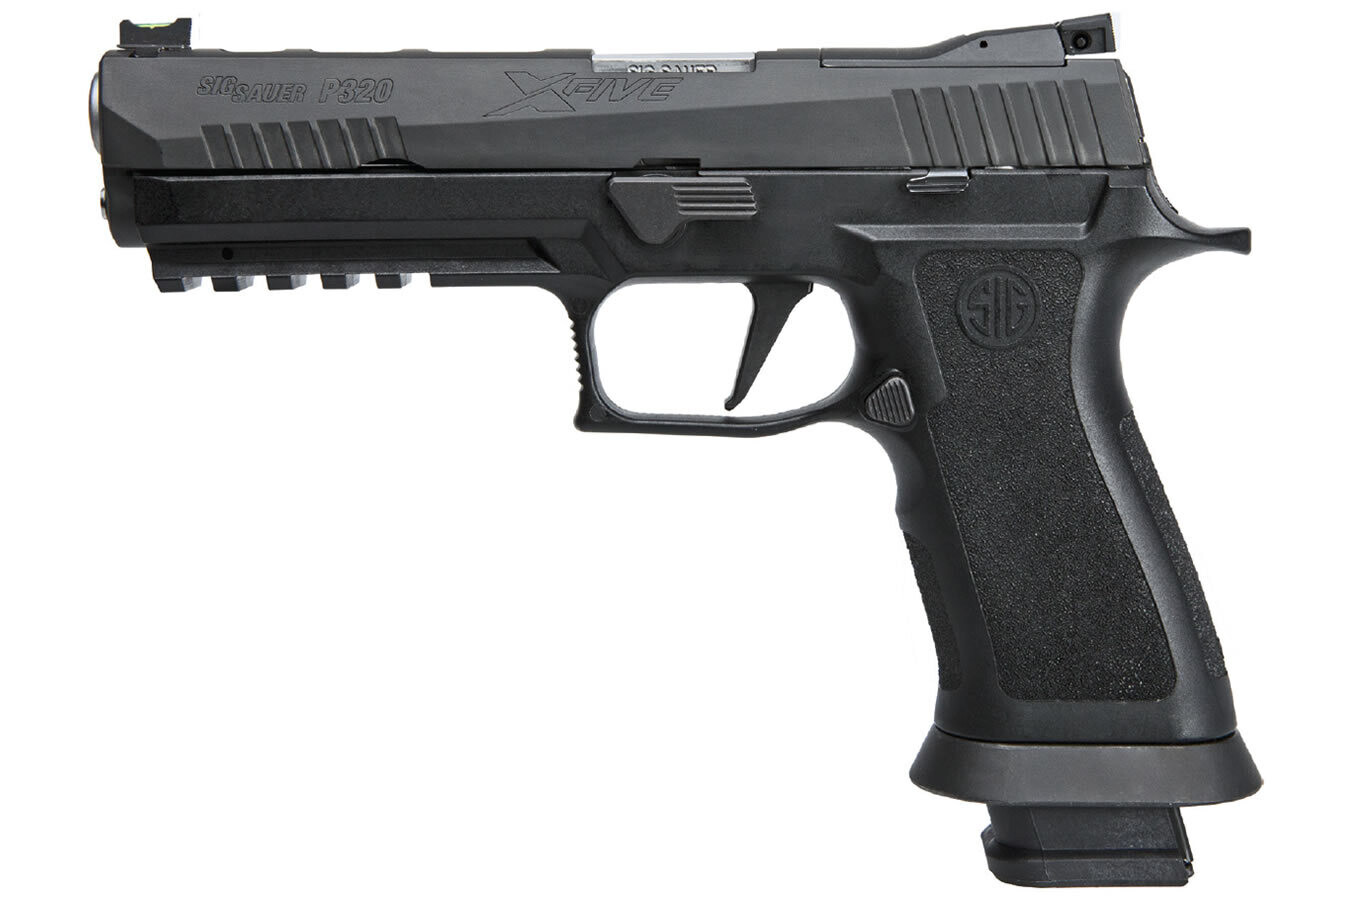 80% Sig Sauer P320 X-Five 9mm Full-Size Build Kit - Comes With P320 80% Insert MUP 1 - Pistol Case